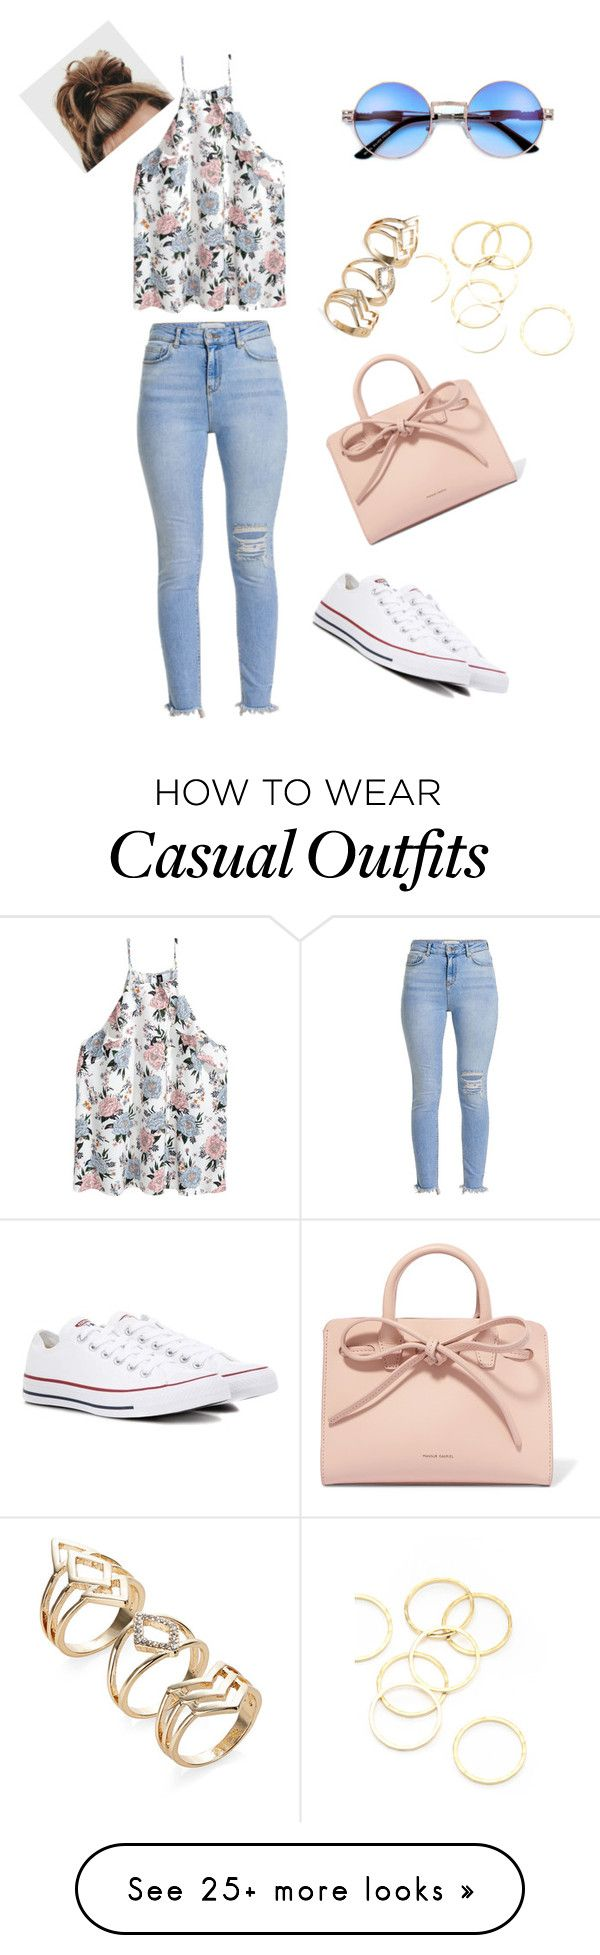 """Casual but cute"" by taylorgonzalez580 on Polyvore featuring Converse, Mansur Gavriel and A.V. Max"